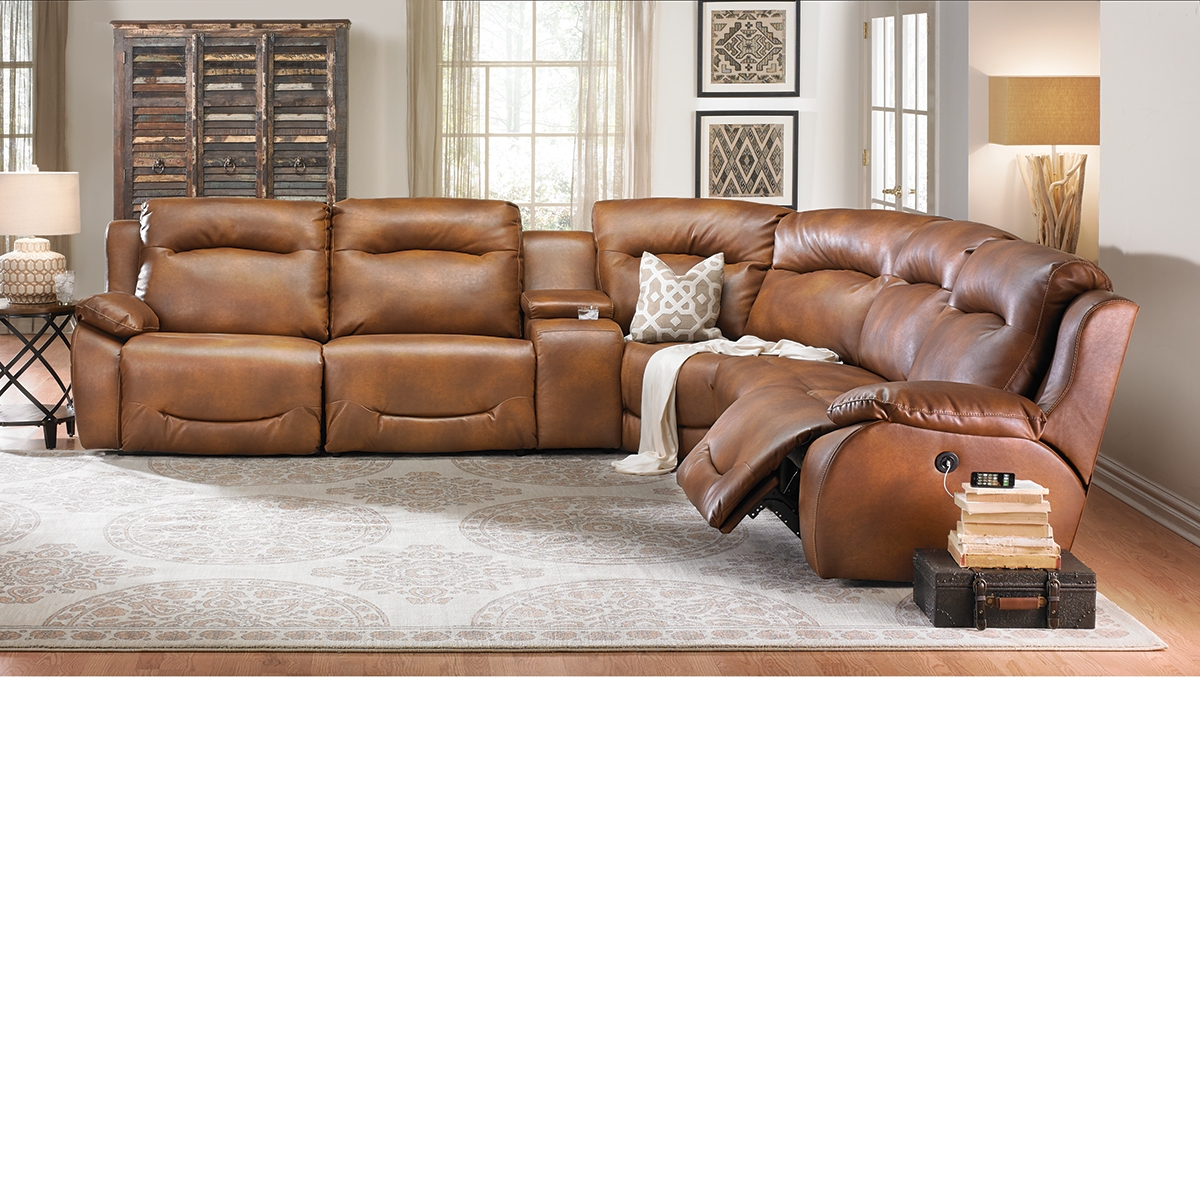 The Dump Furniture Outlet Closeout 6 Piece Power Plus Sectional Regarding Closeout Sectional Sofas (Image 15 of 15)